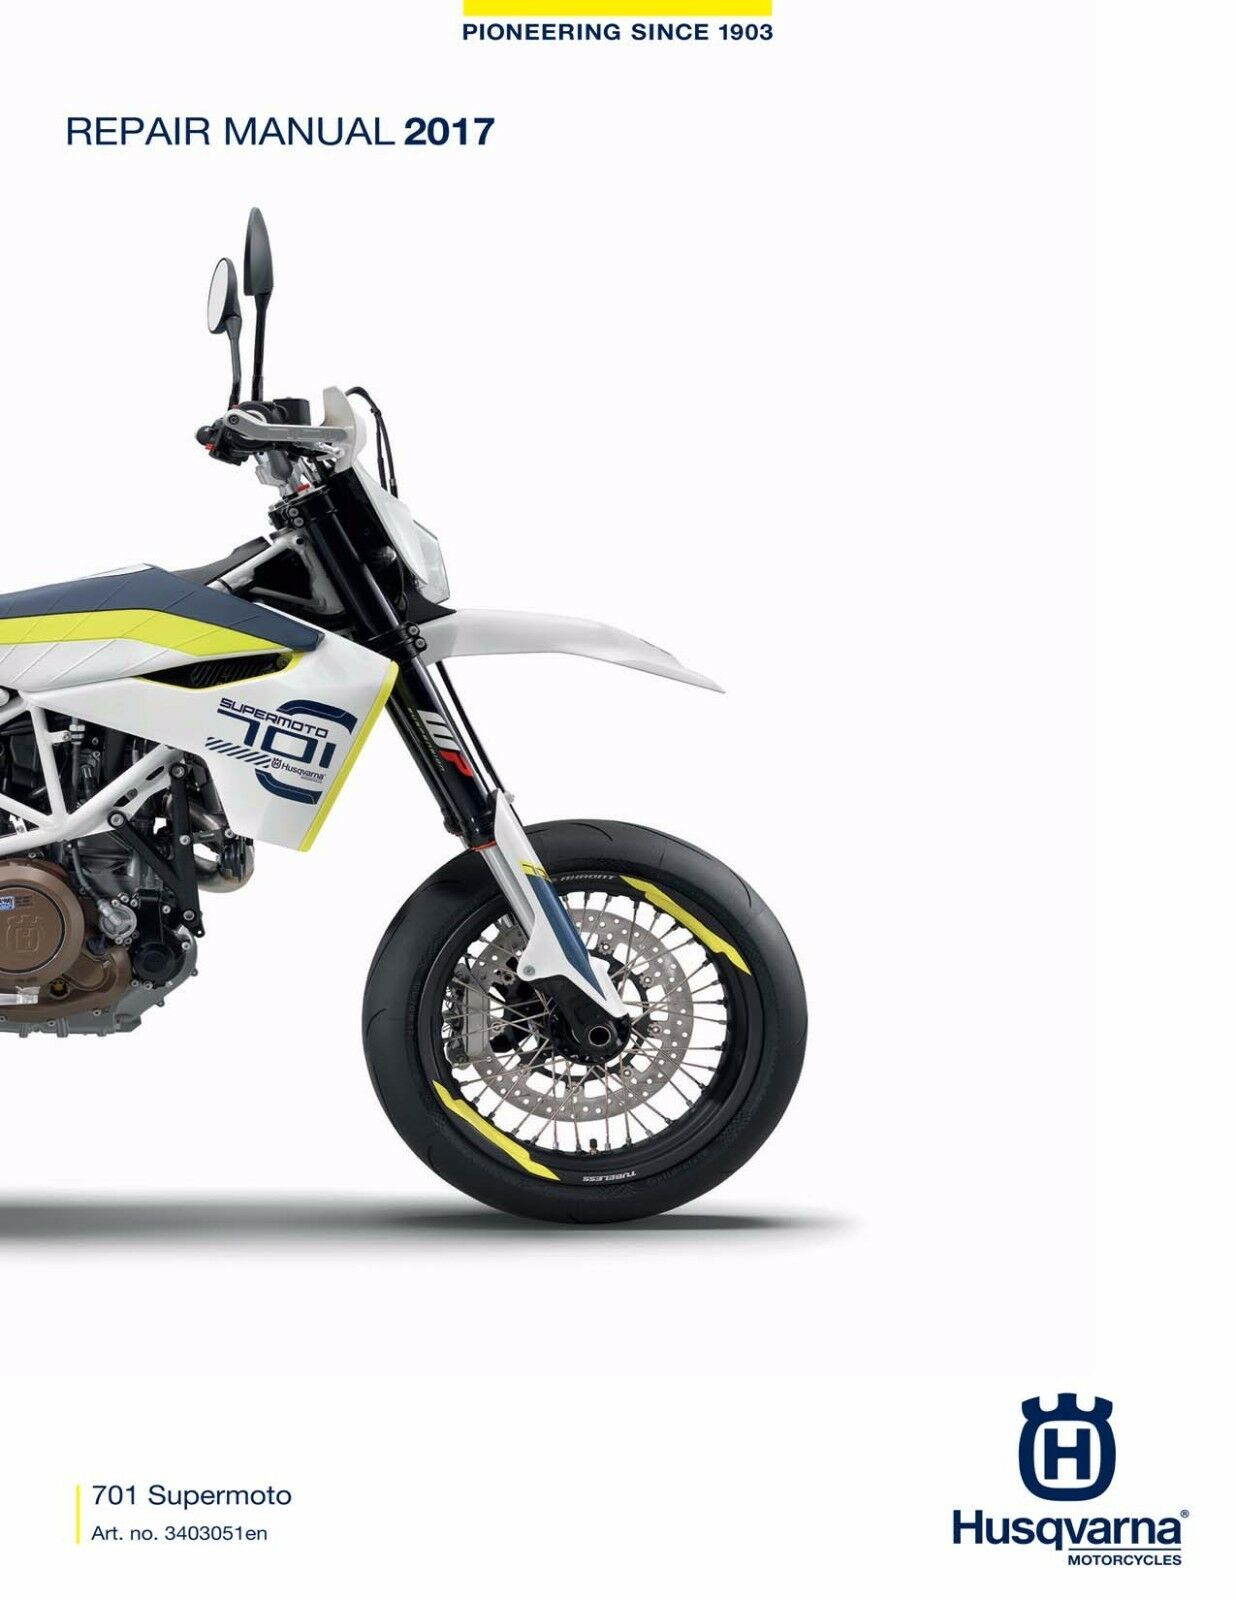 Husqvarna workshop service manual 2017 701 Supermoto 1 of 12FREE Shipping  ...